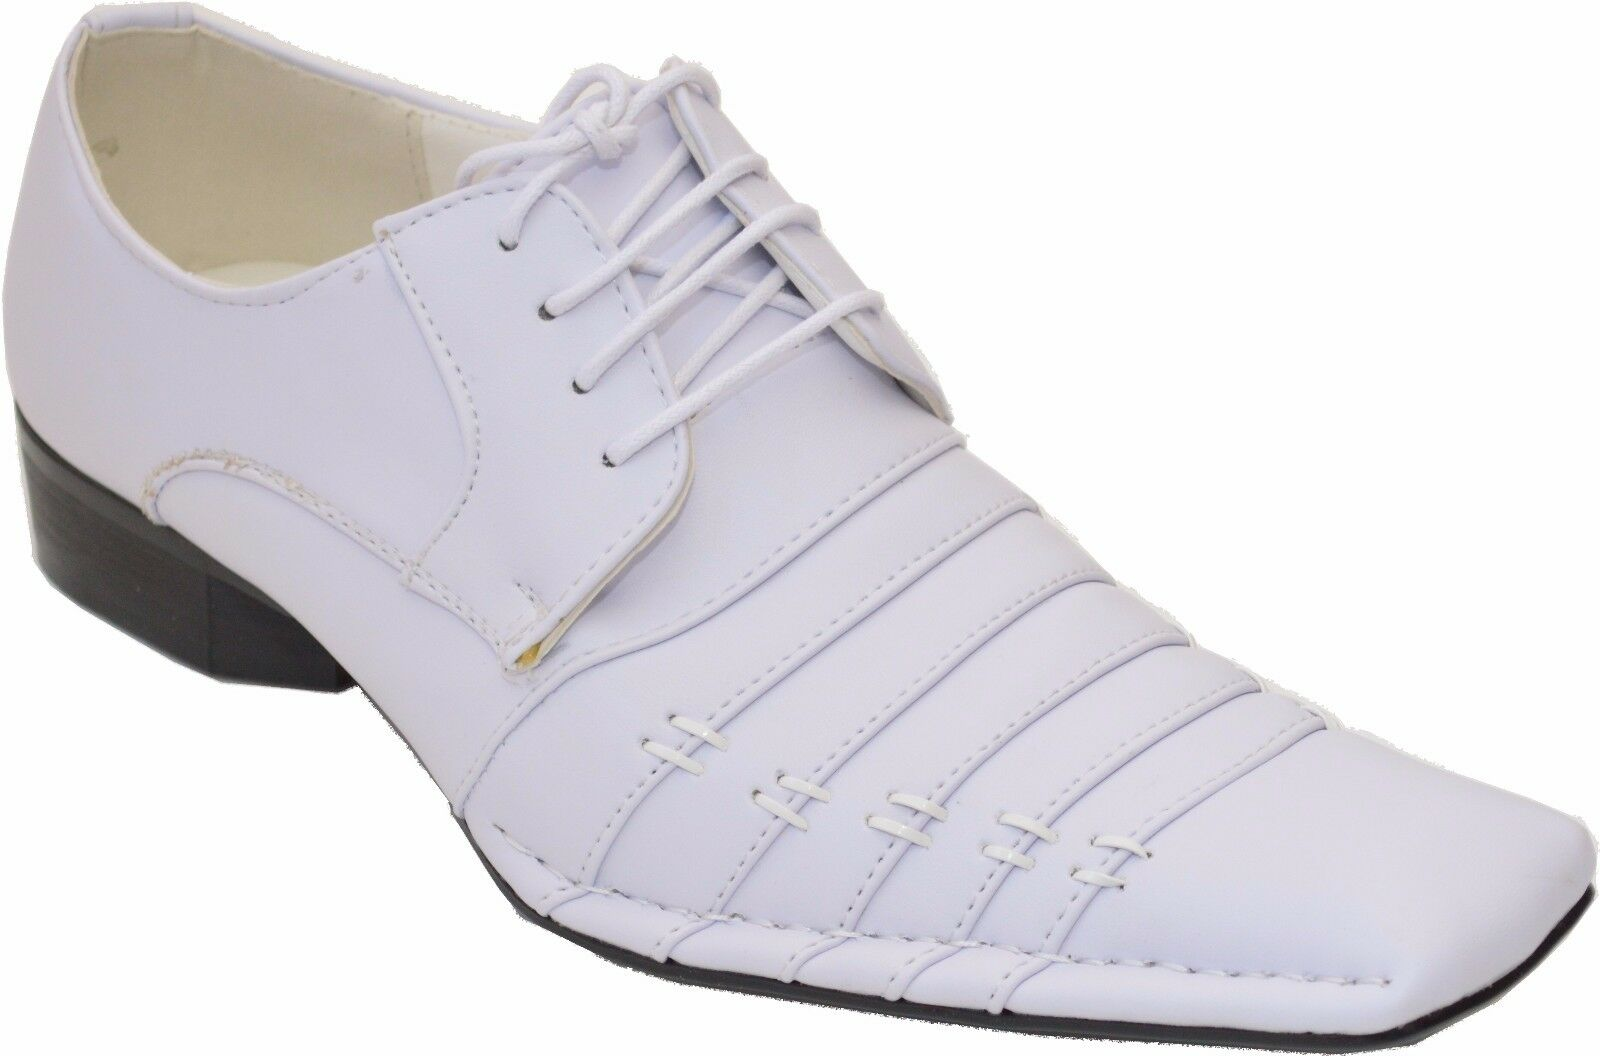 New Men's Lace-Up Oxfords Wedding Formal Church Party Dress shoes White -Harlem